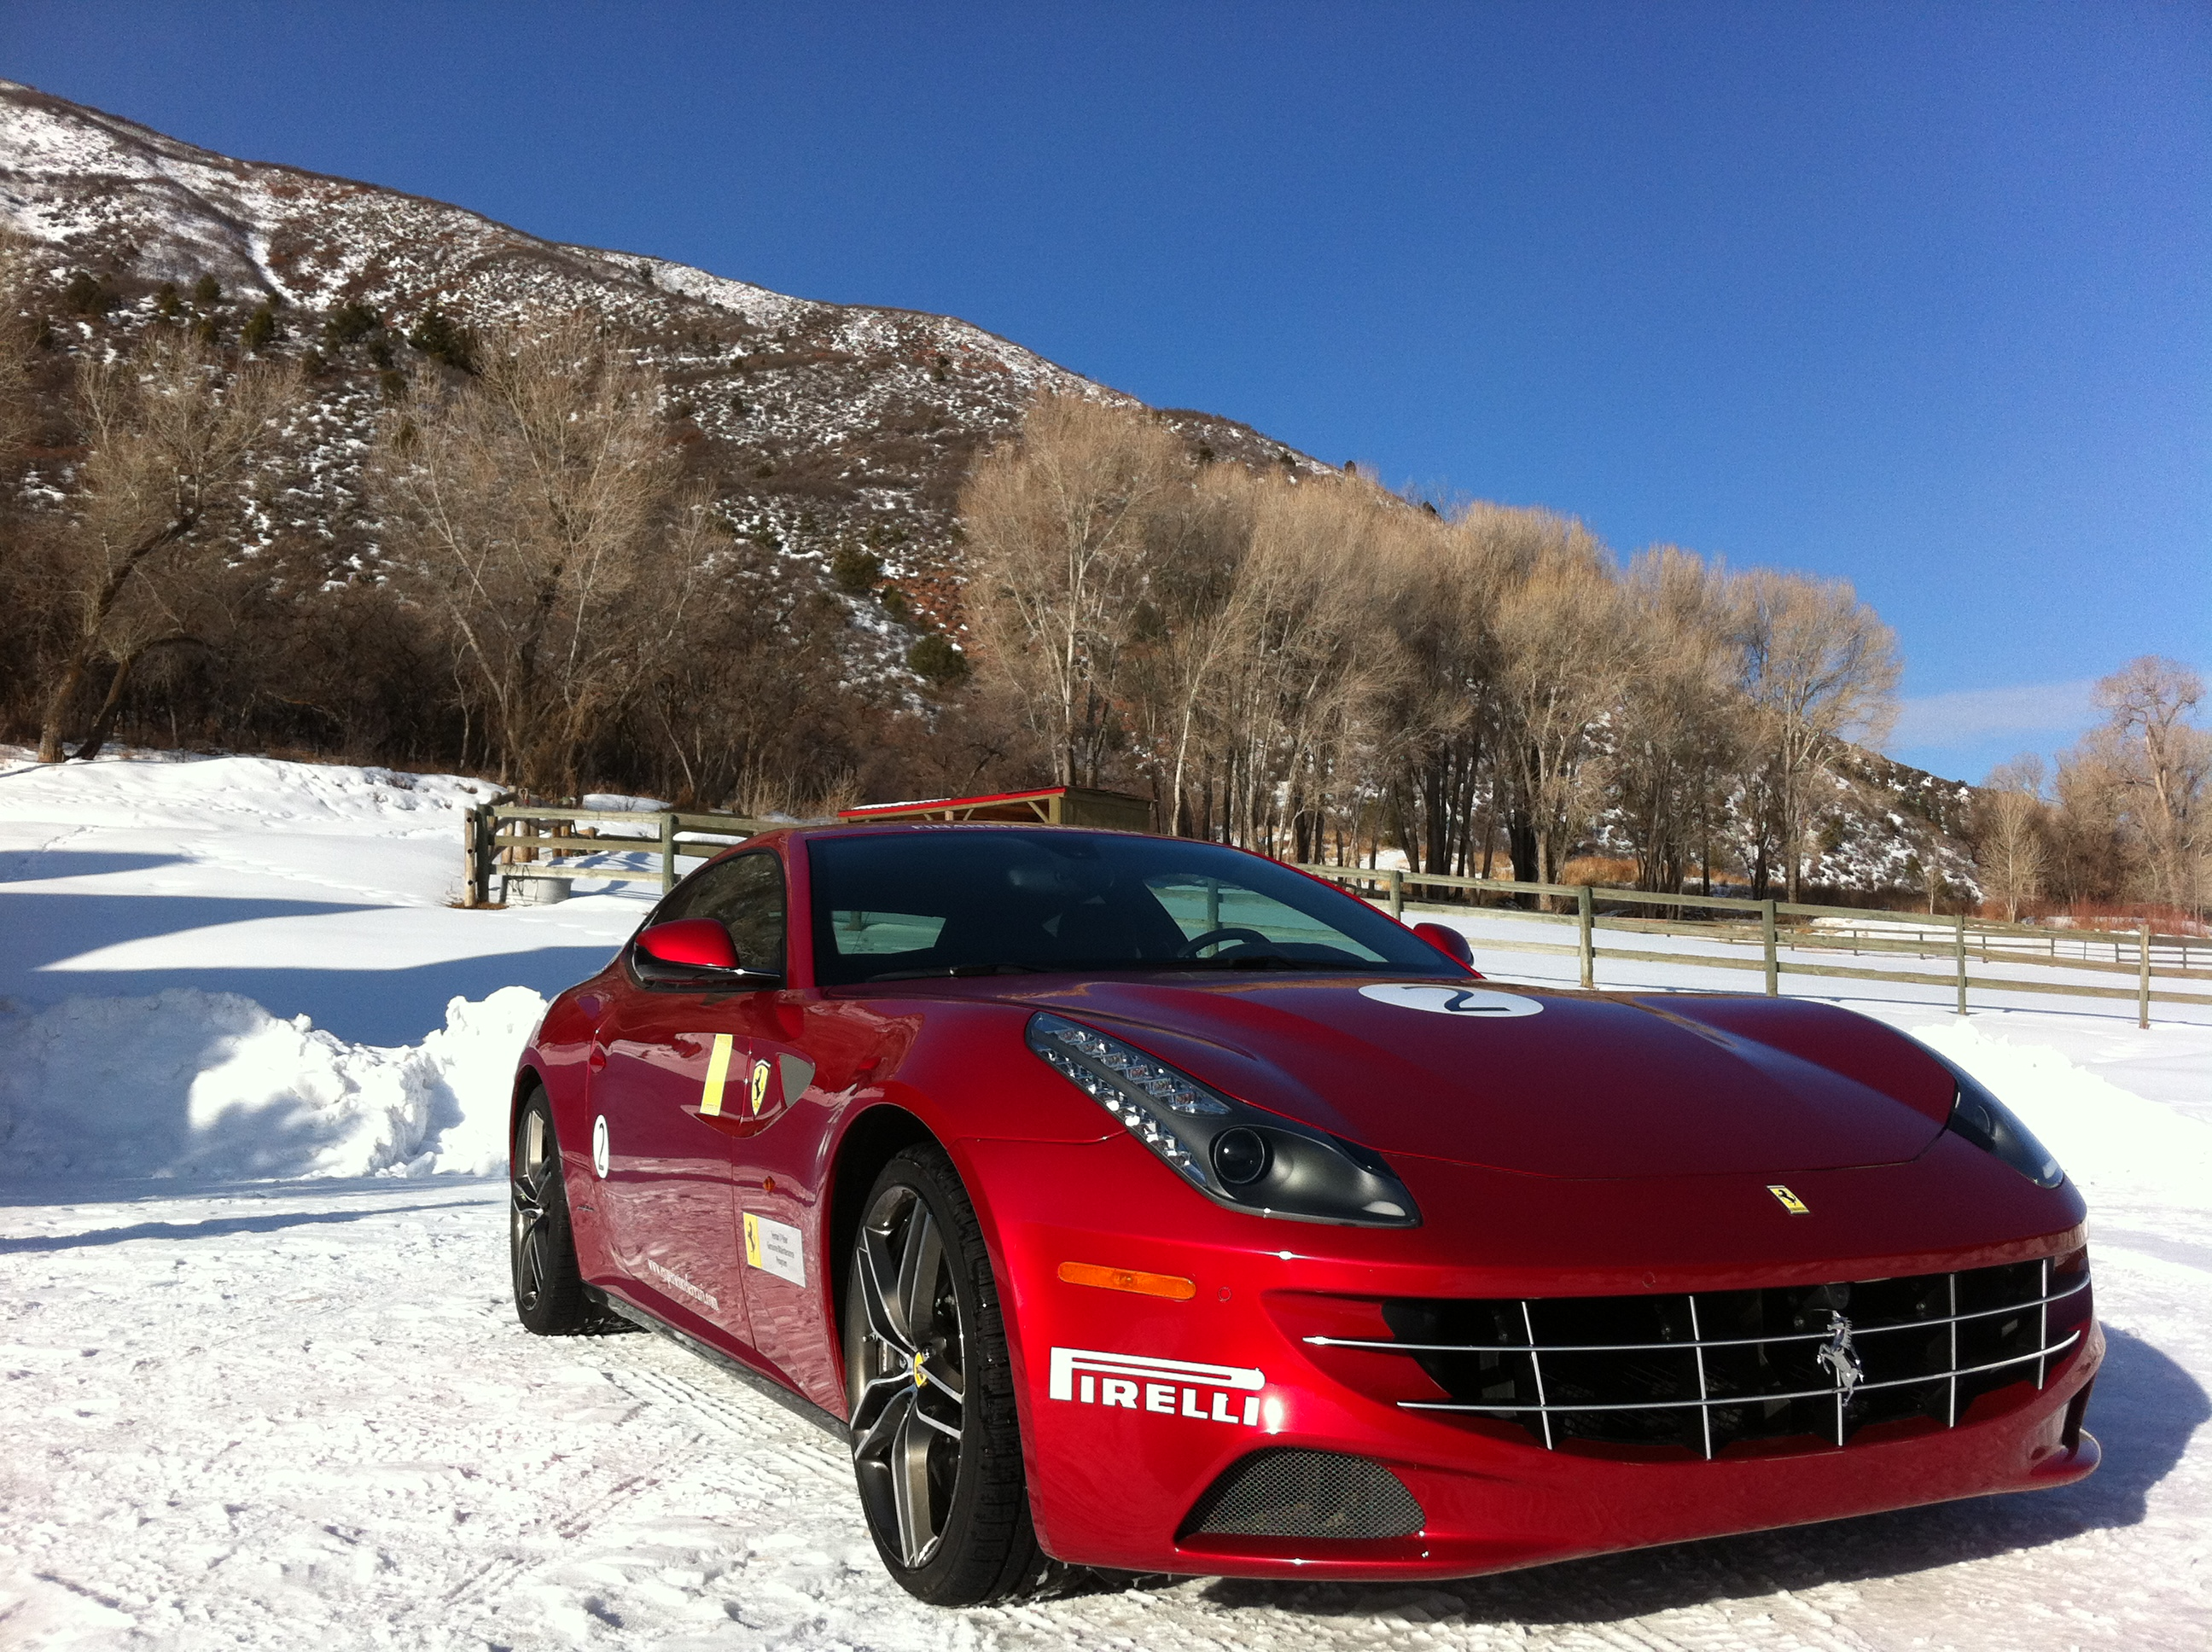 ferrari archives page groupon ratheesh people category profile of img rajan